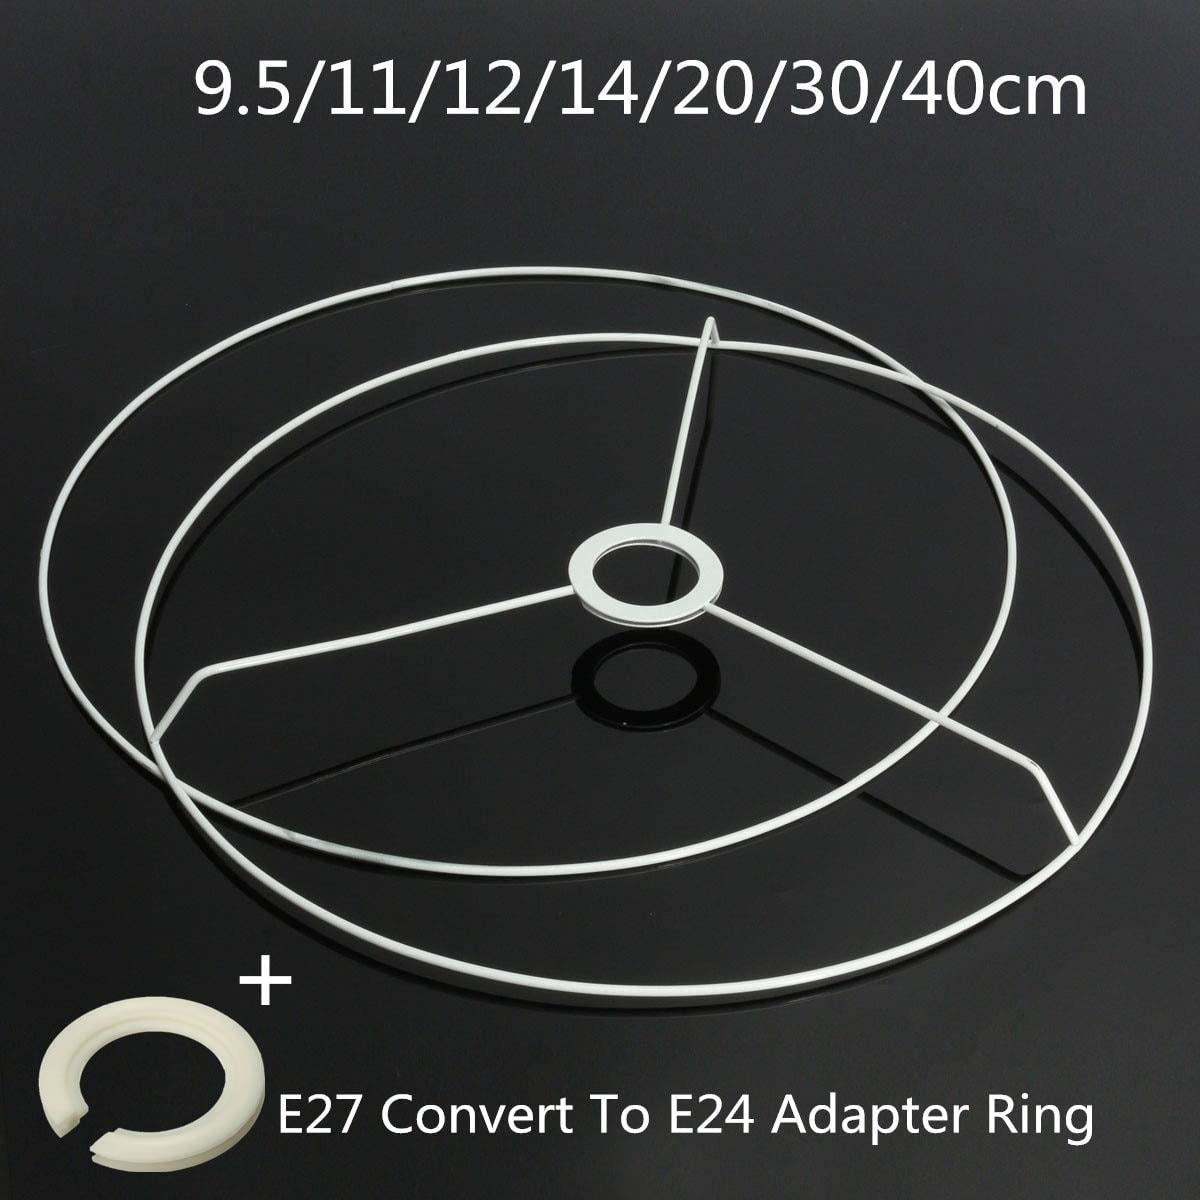 E27 to E14 Lampshade Lamp Fix Ring Adapter - Harlica Tools Circular Lampshade Frame Ring Light Shade DIY Set 11-40cm Diameter Body Color: 30cm